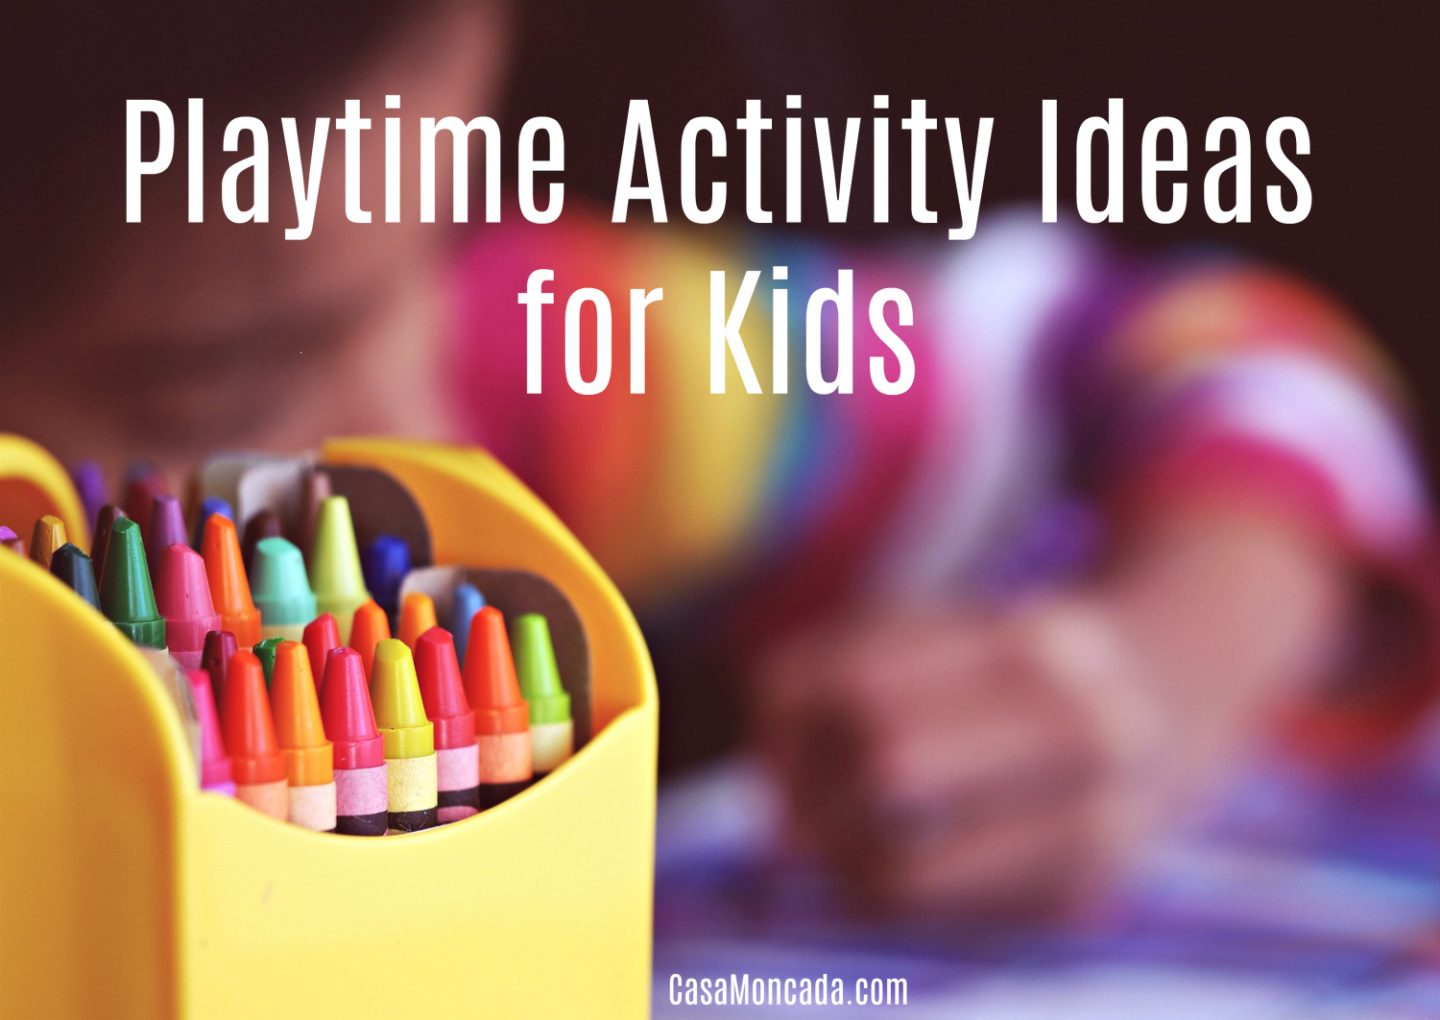 Playtime Activity Ideas for Kids